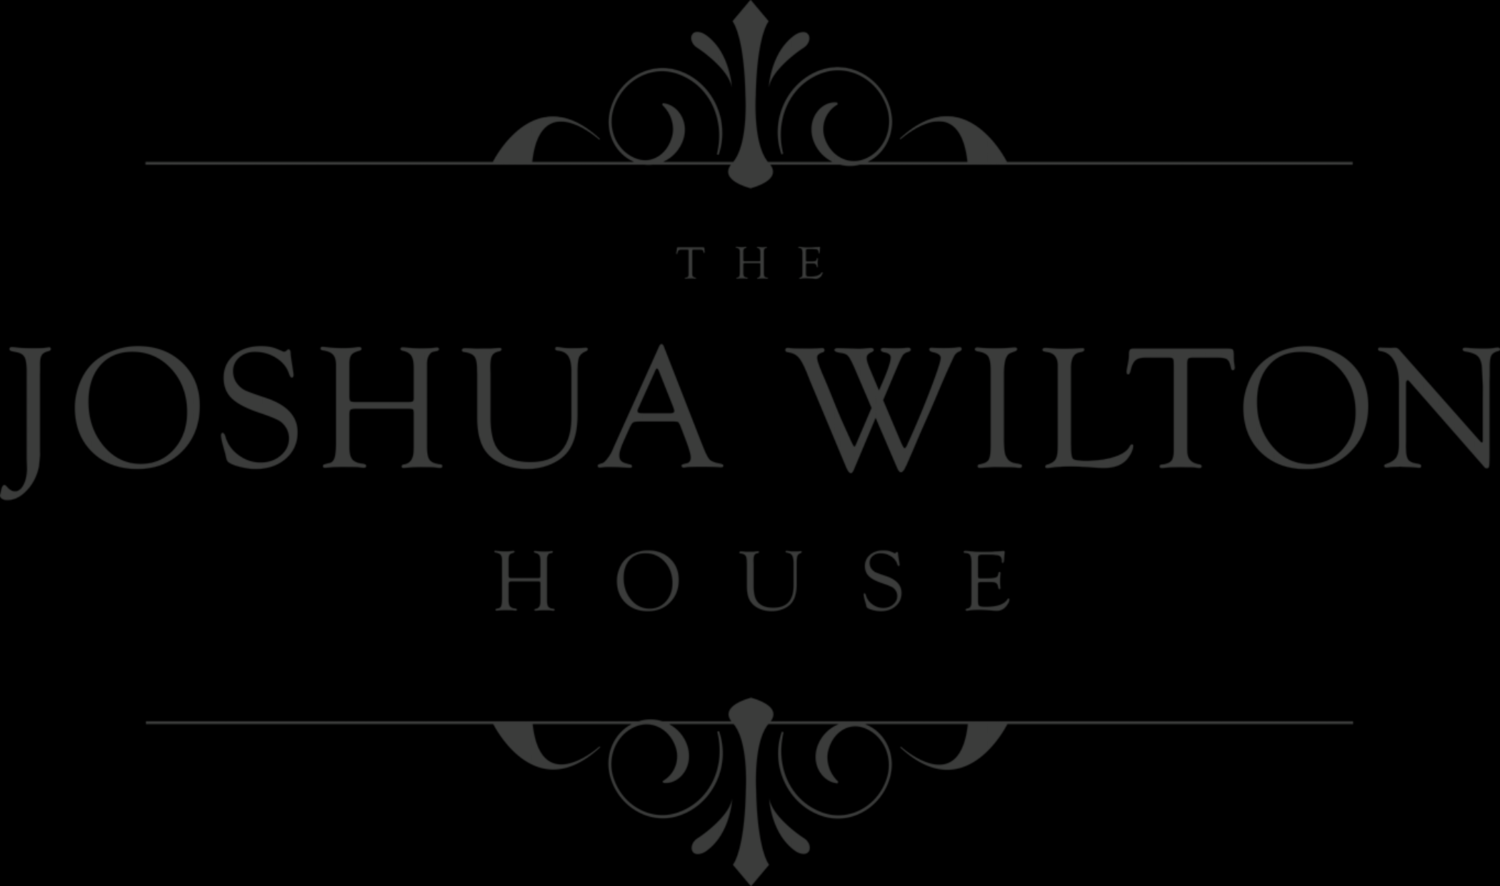 Joshua Wilton House